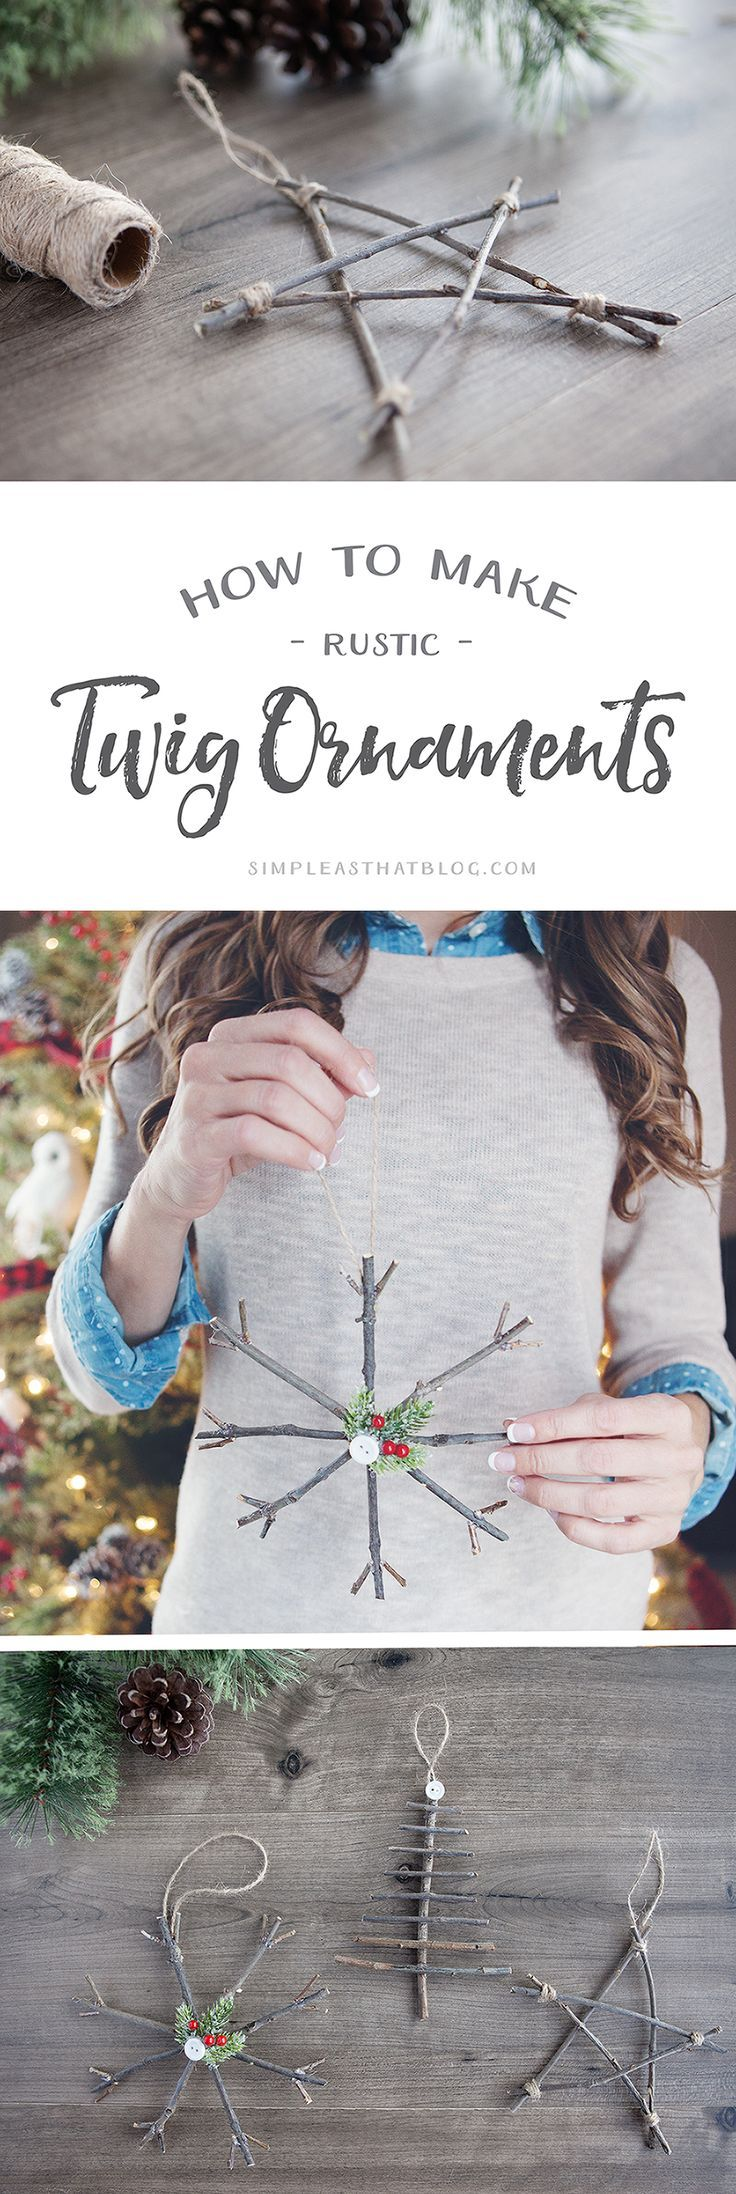 Bring a touch of nature indoors this year as you decorate your tree – learn how to make rustic twig Christmas ornaments! Theyre simple, inexpensive and look beautiful!